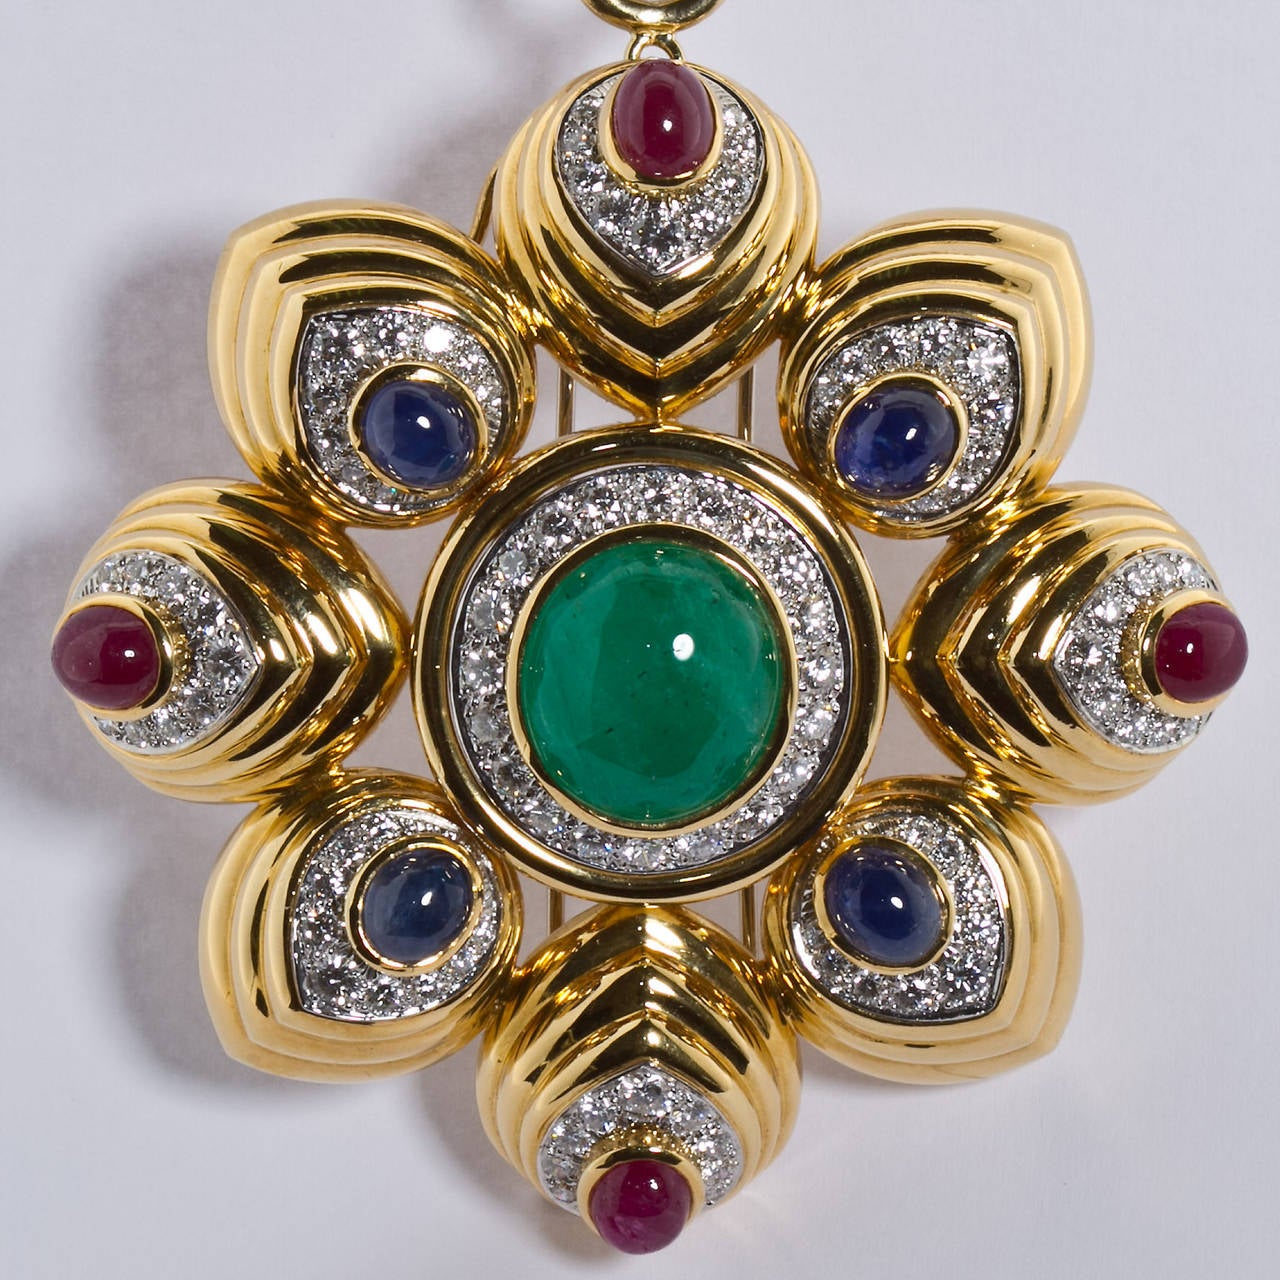 A substantial 18k yellow gold eight pointed combination brooch/pendant with a large center cabochon emerald, and four each of smaller cabochon blue  sapphires and cabochon rubies.  Brilliant round diamond pavé style borders surround each gem. By